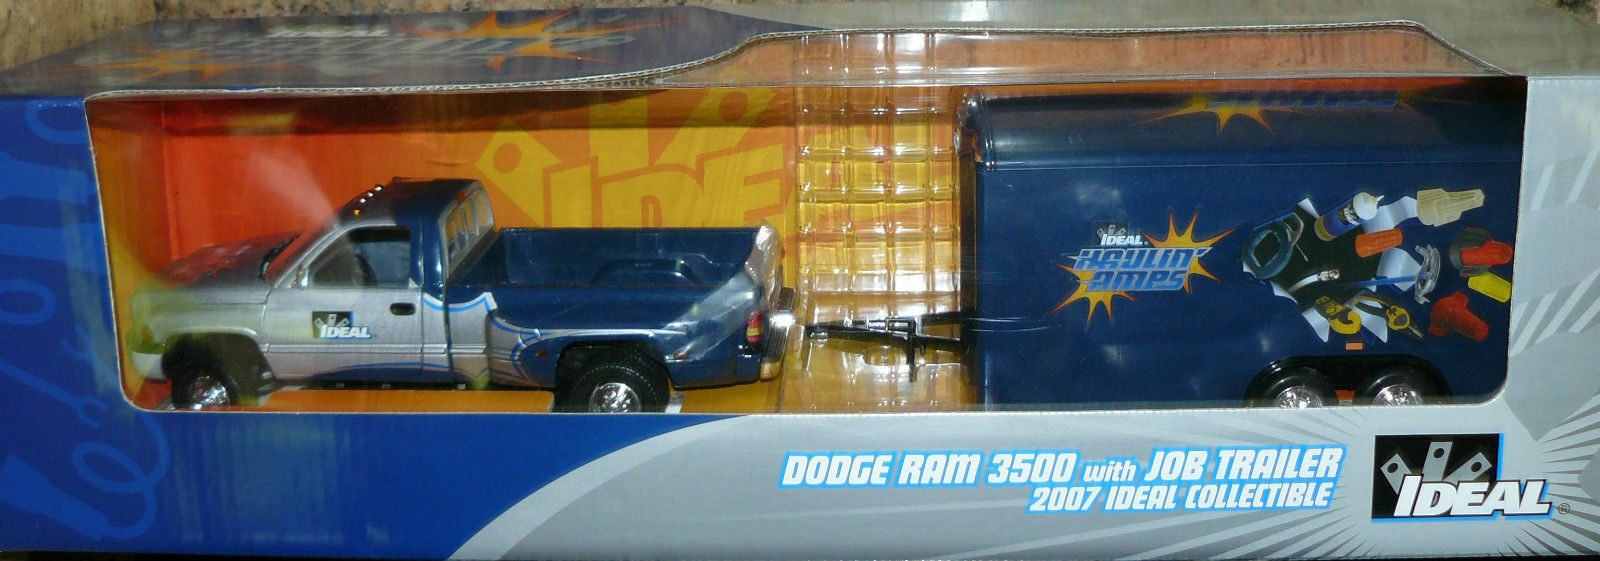 1 18 Dodge Dually with enclosed trailer, Very hard  to find, AS IS,  nouveau style